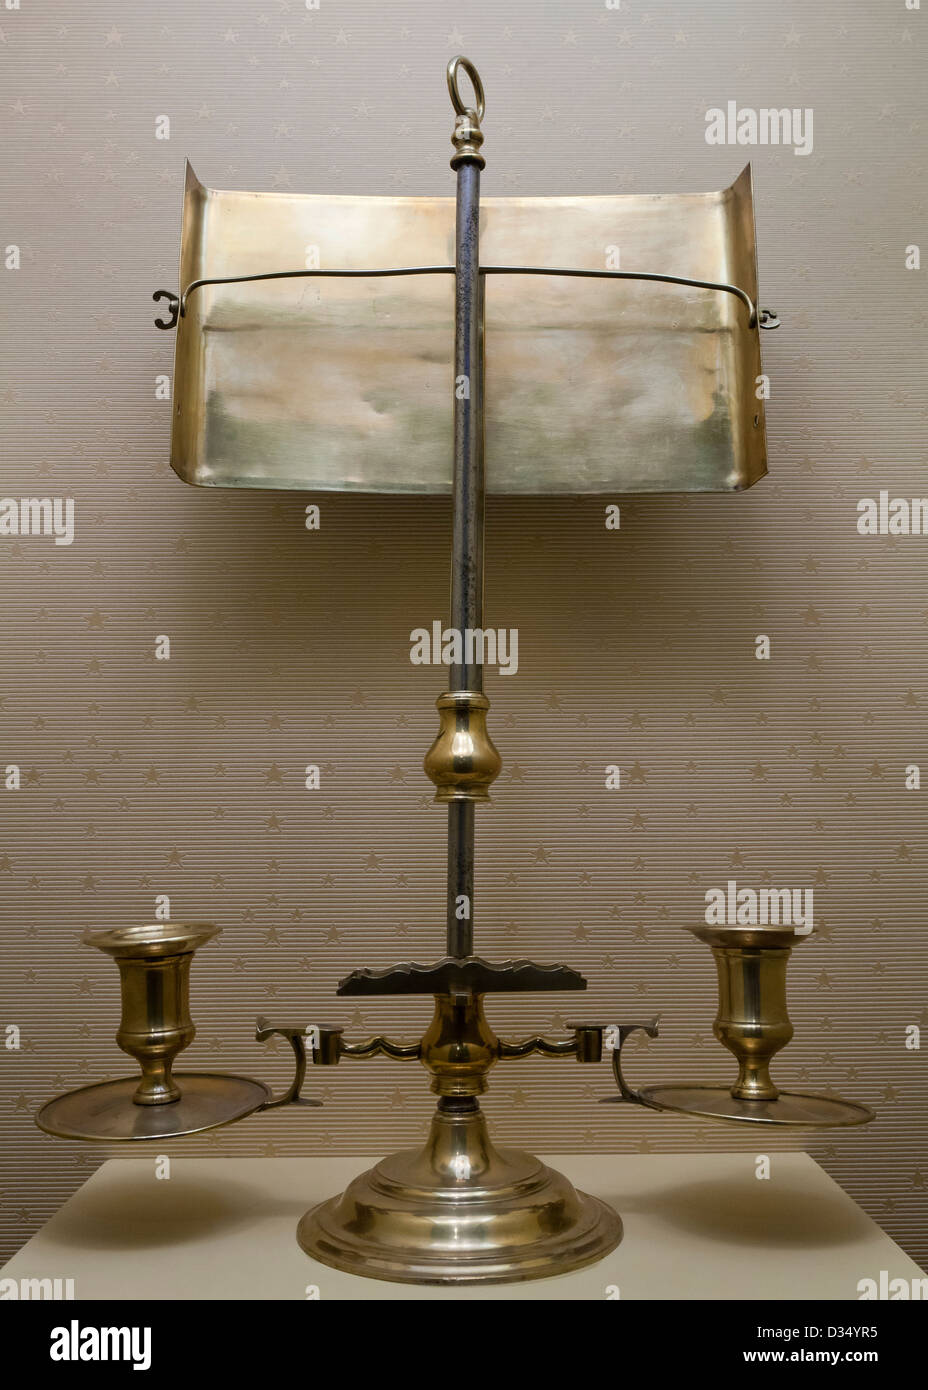 Vintage brass candelabrum with reflector - Stock Image